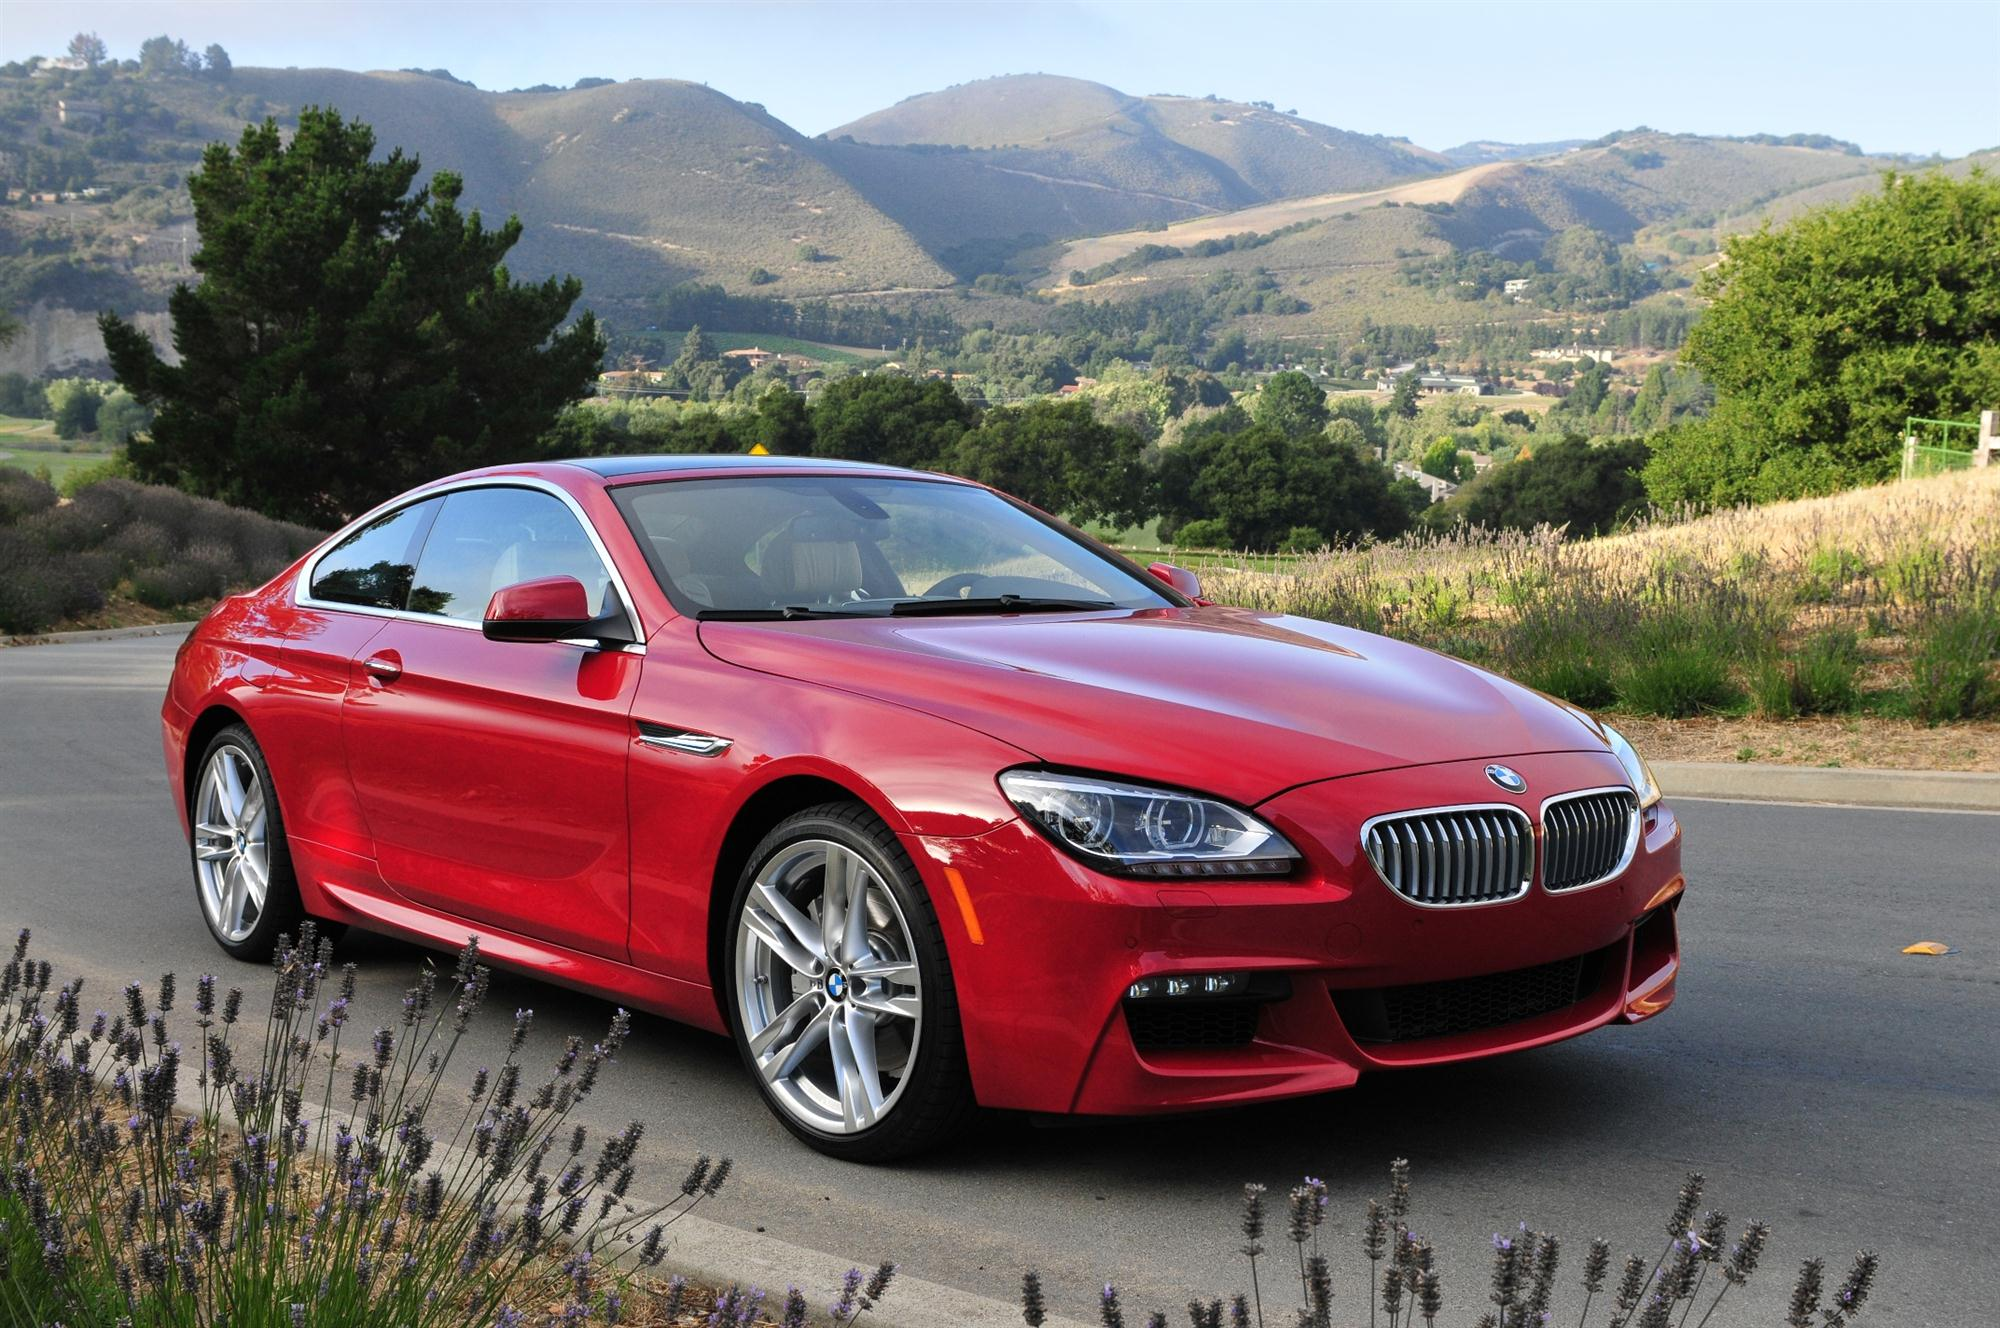 Bmw 650i Price 2012 BMW 6-Series Review, Ratings, Specs, Prices, and Photos - The Car ...